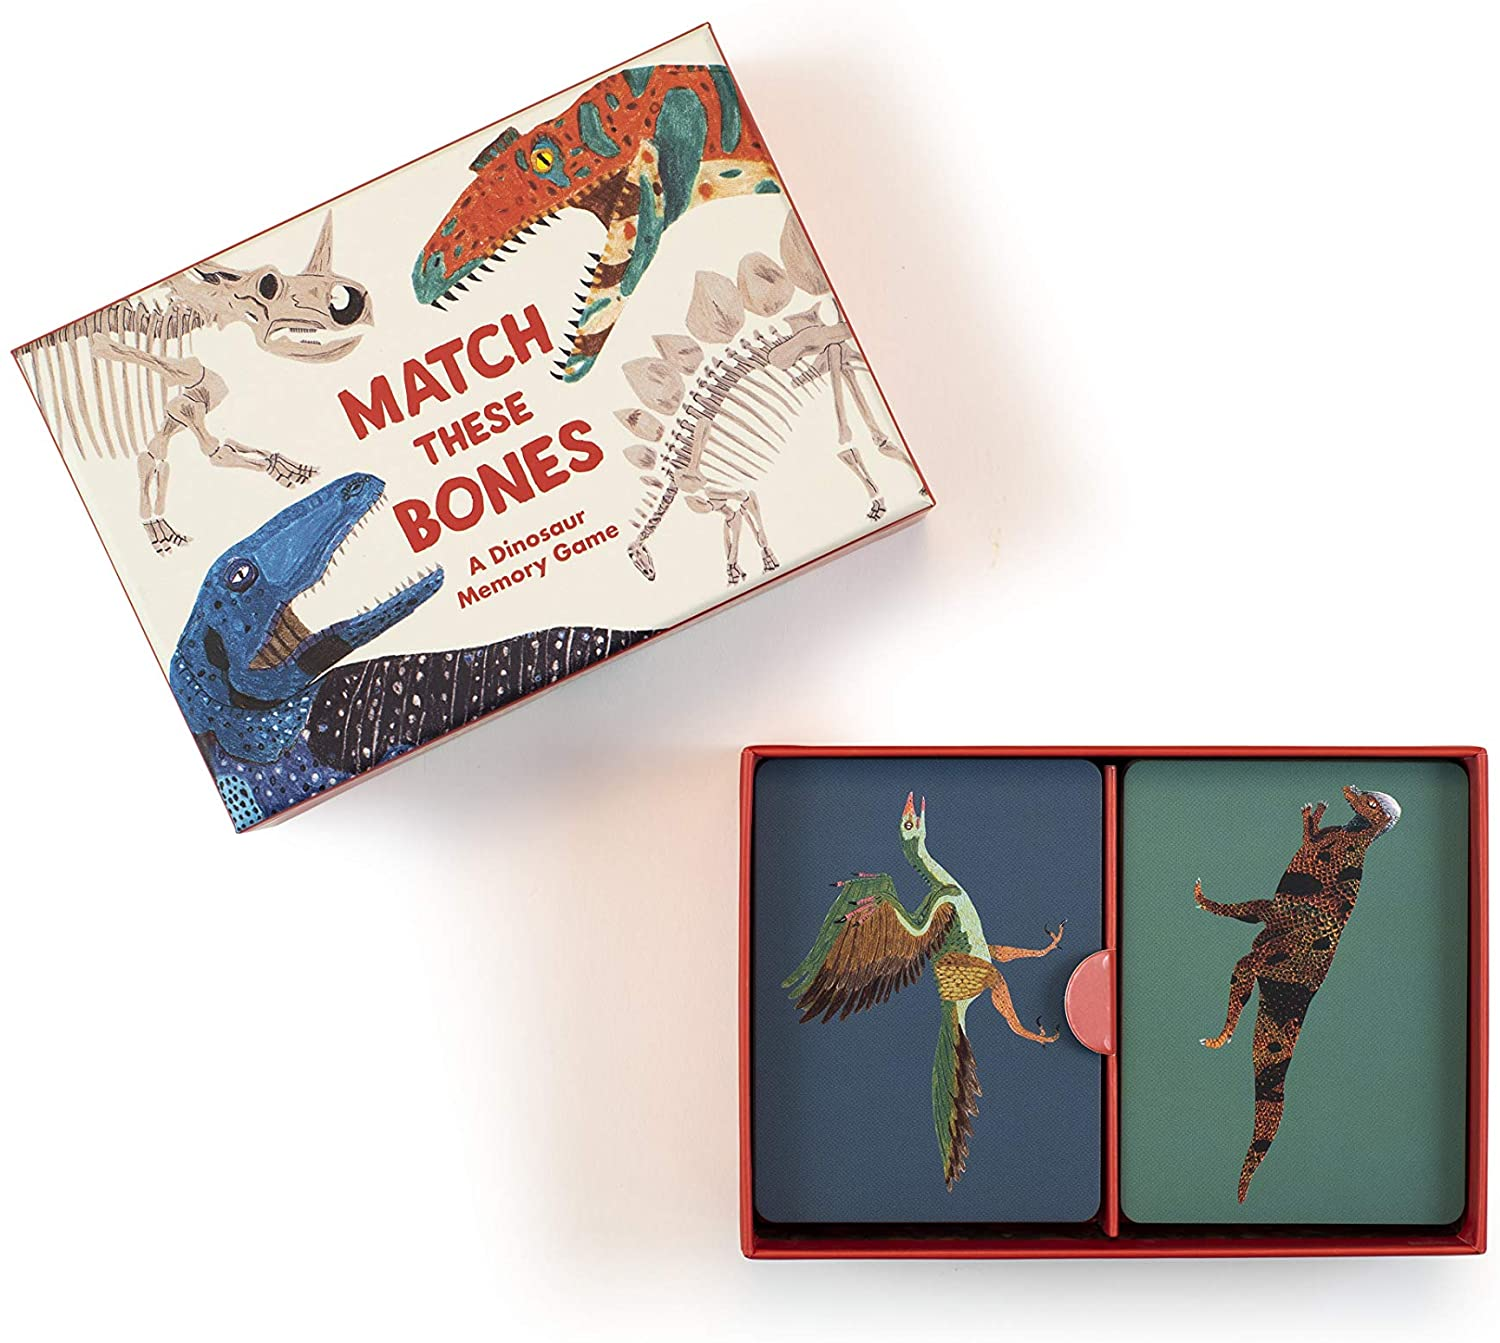 Match These Bones - A Dinosaur Memory Game